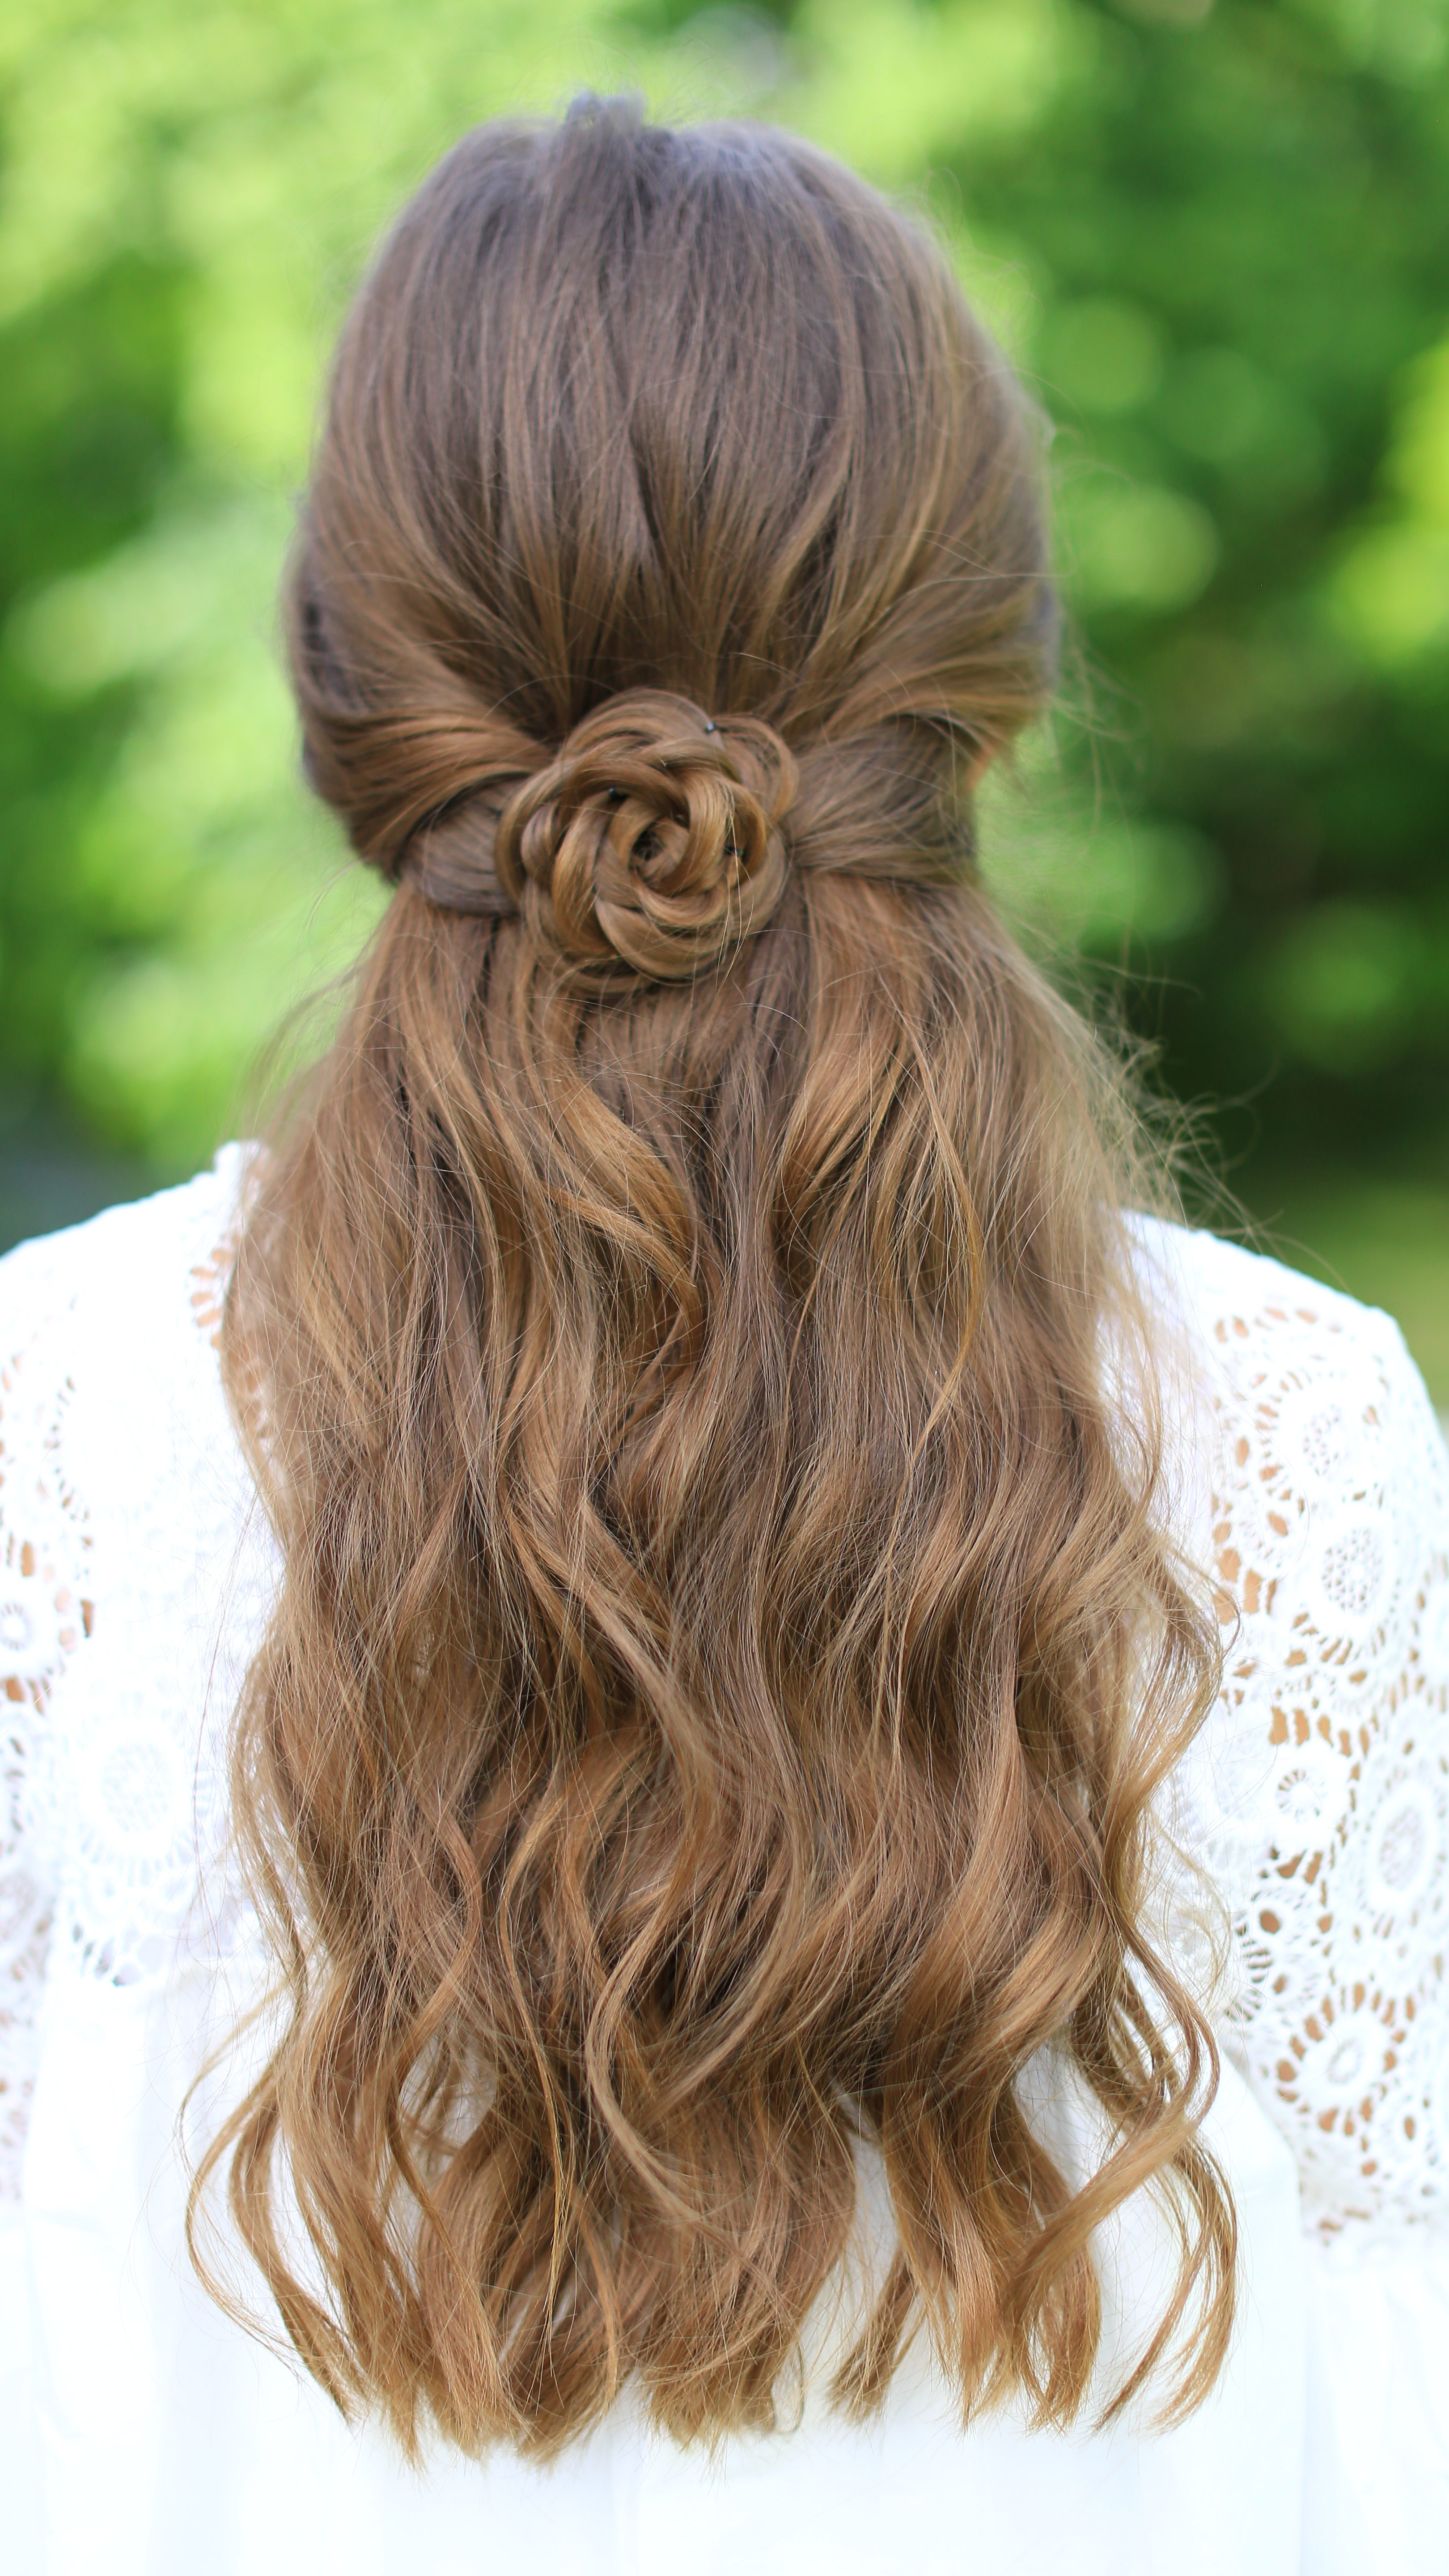 Best ideas about Girl Hairstyle . Save or Pin Rosette Tieback Now.